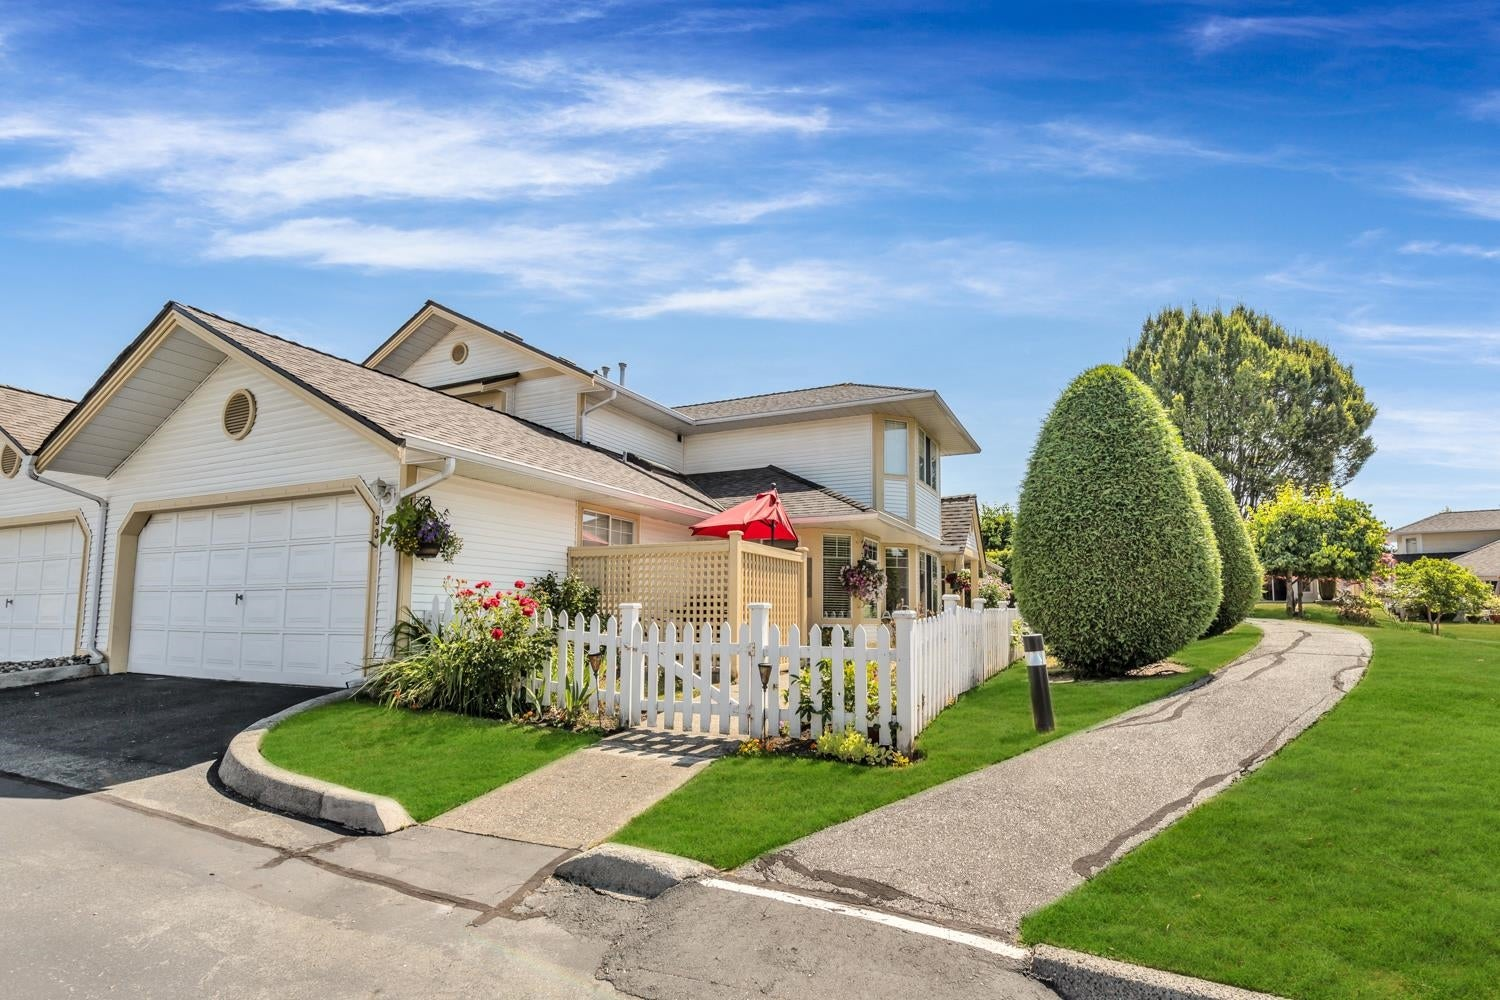 33 21138 88 AVENUE - Walnut Grove Townhouse for sale, 3 Bedrooms (R2621665) - #1